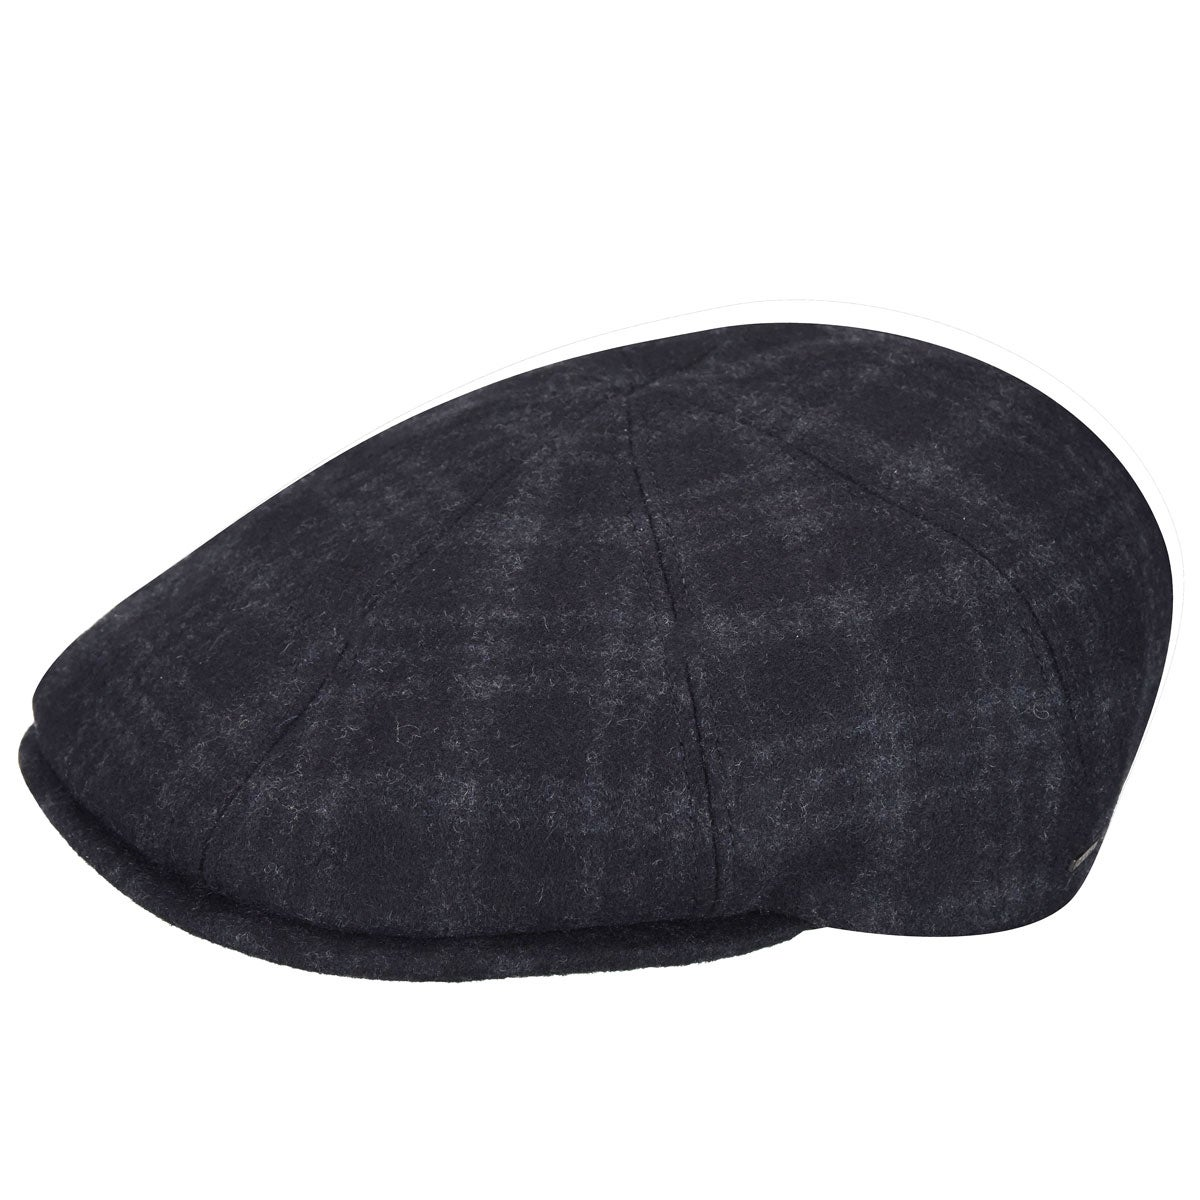 Bailey of Hollywood Cove Dockman Cap in Grey Plaid